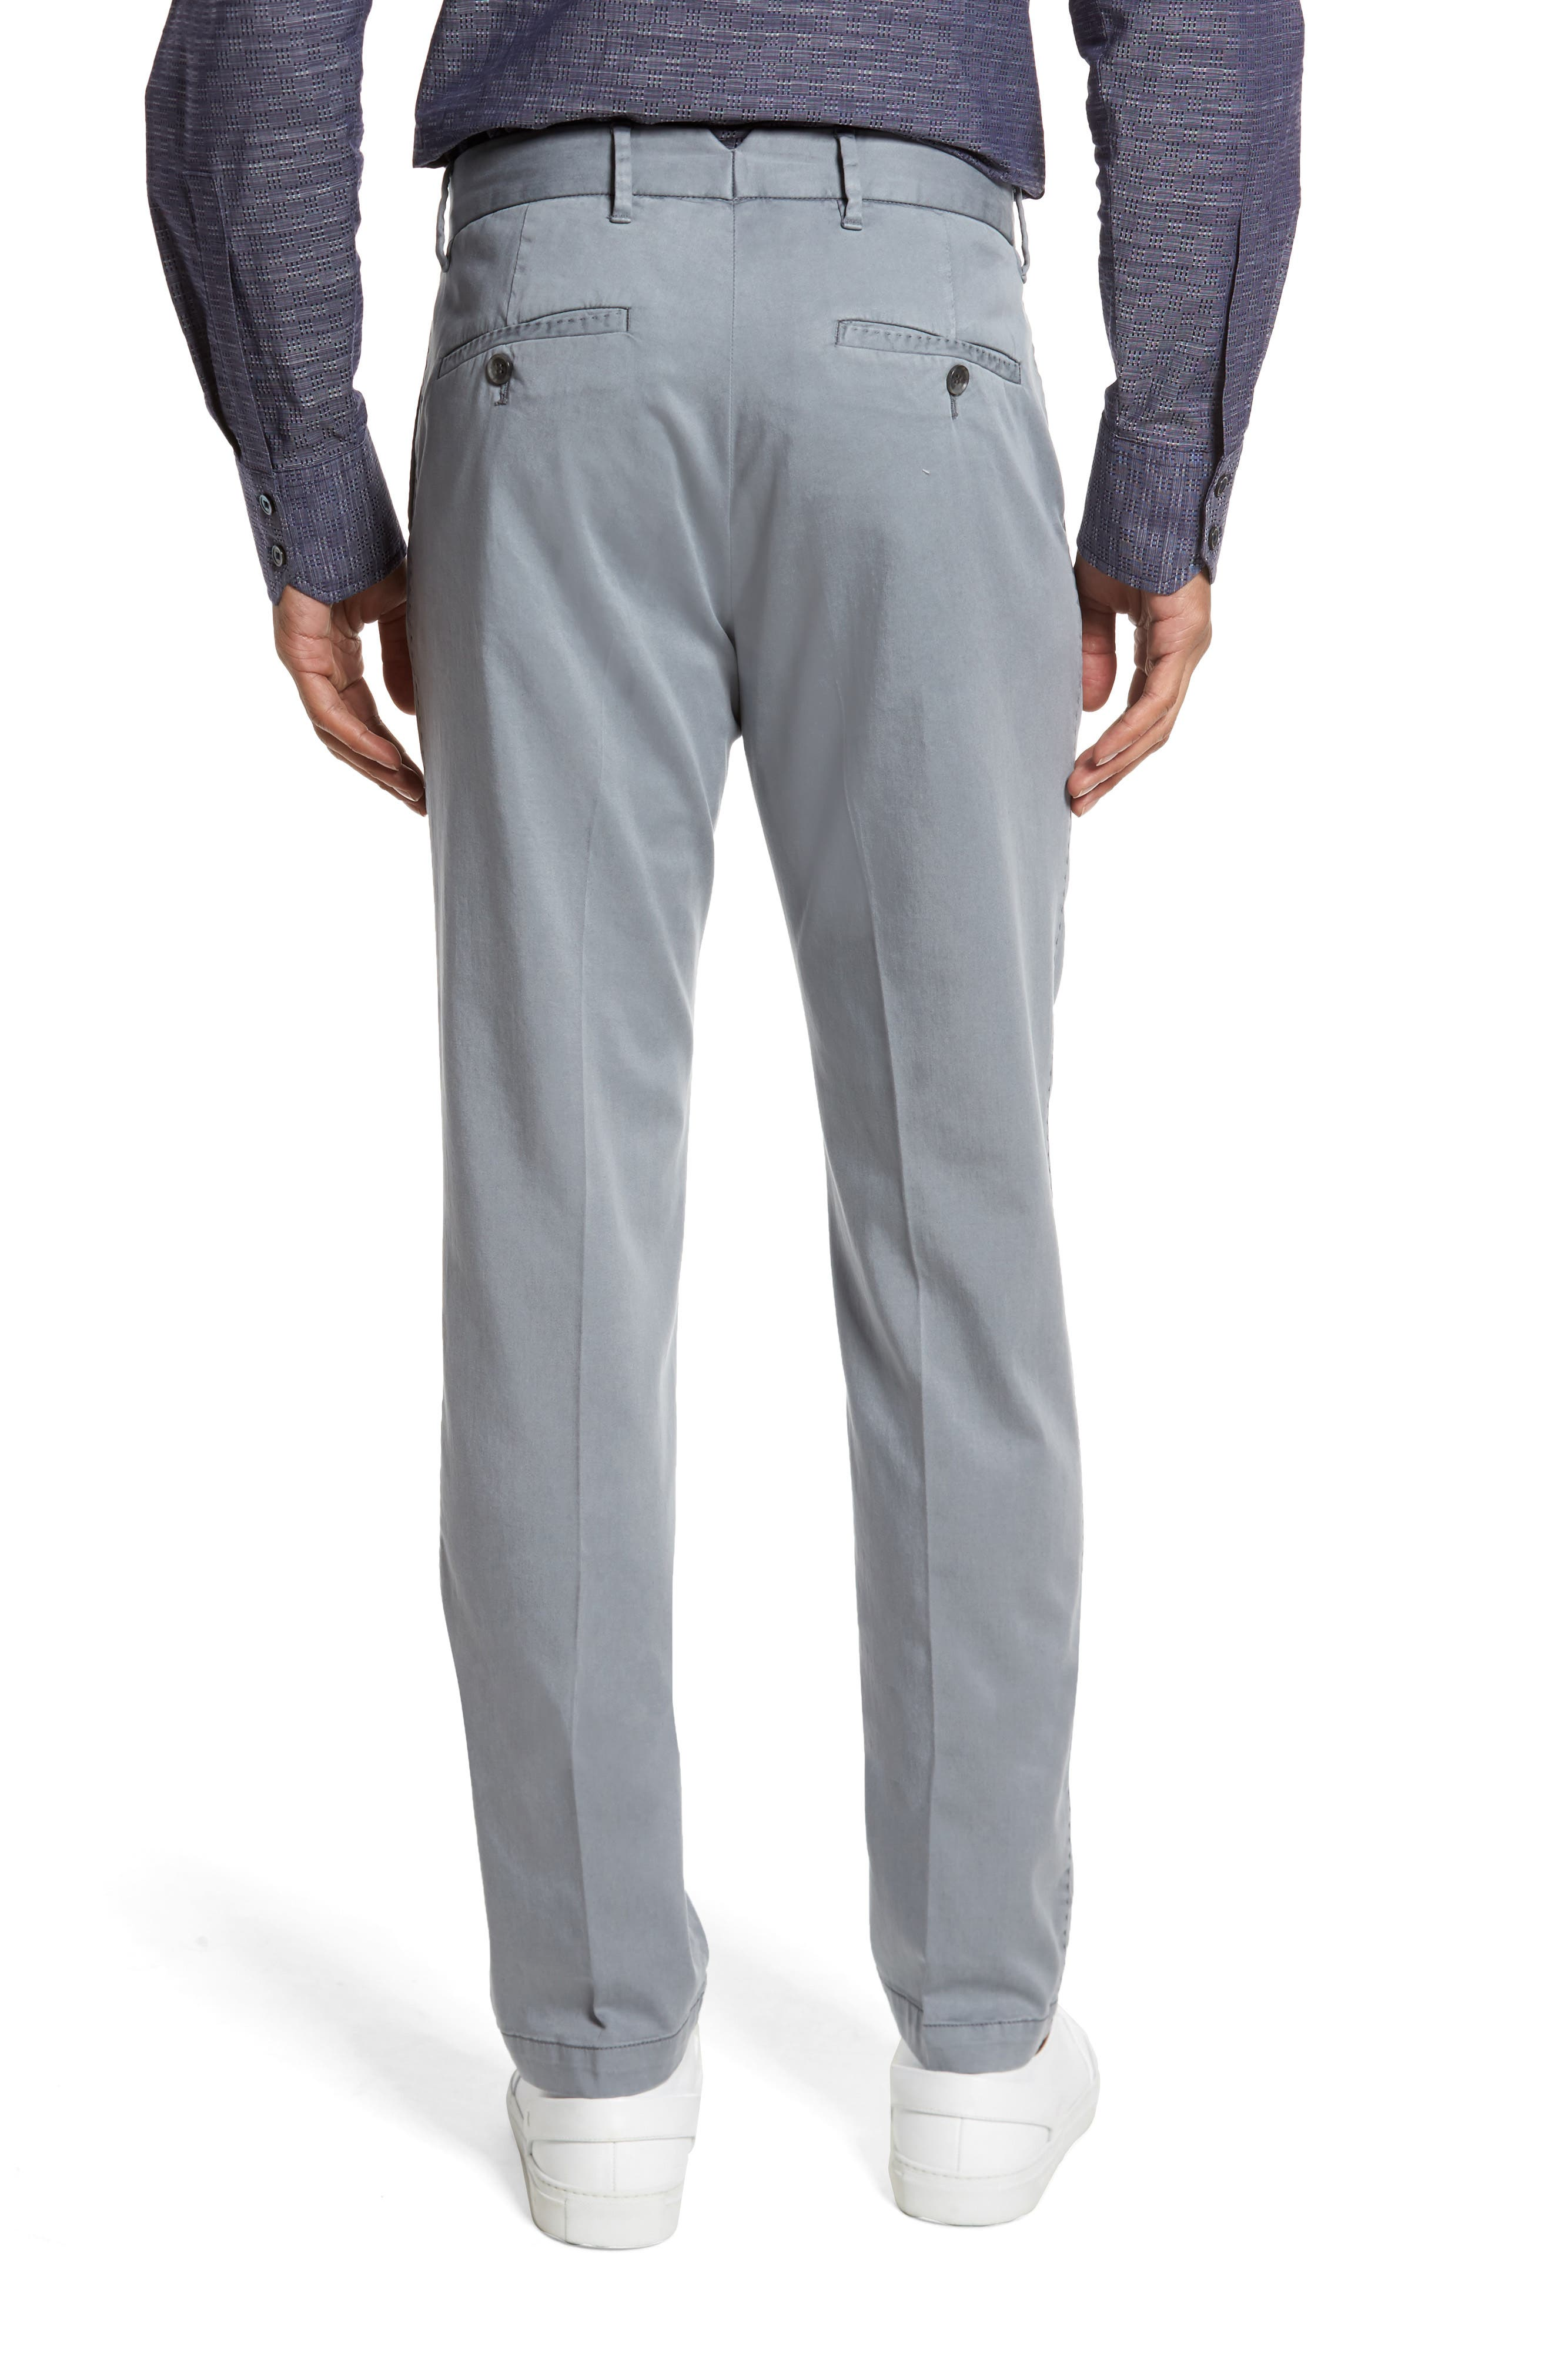 Aster Straight Fit Pants,                             Alternate thumbnail 2, color,                             GREY